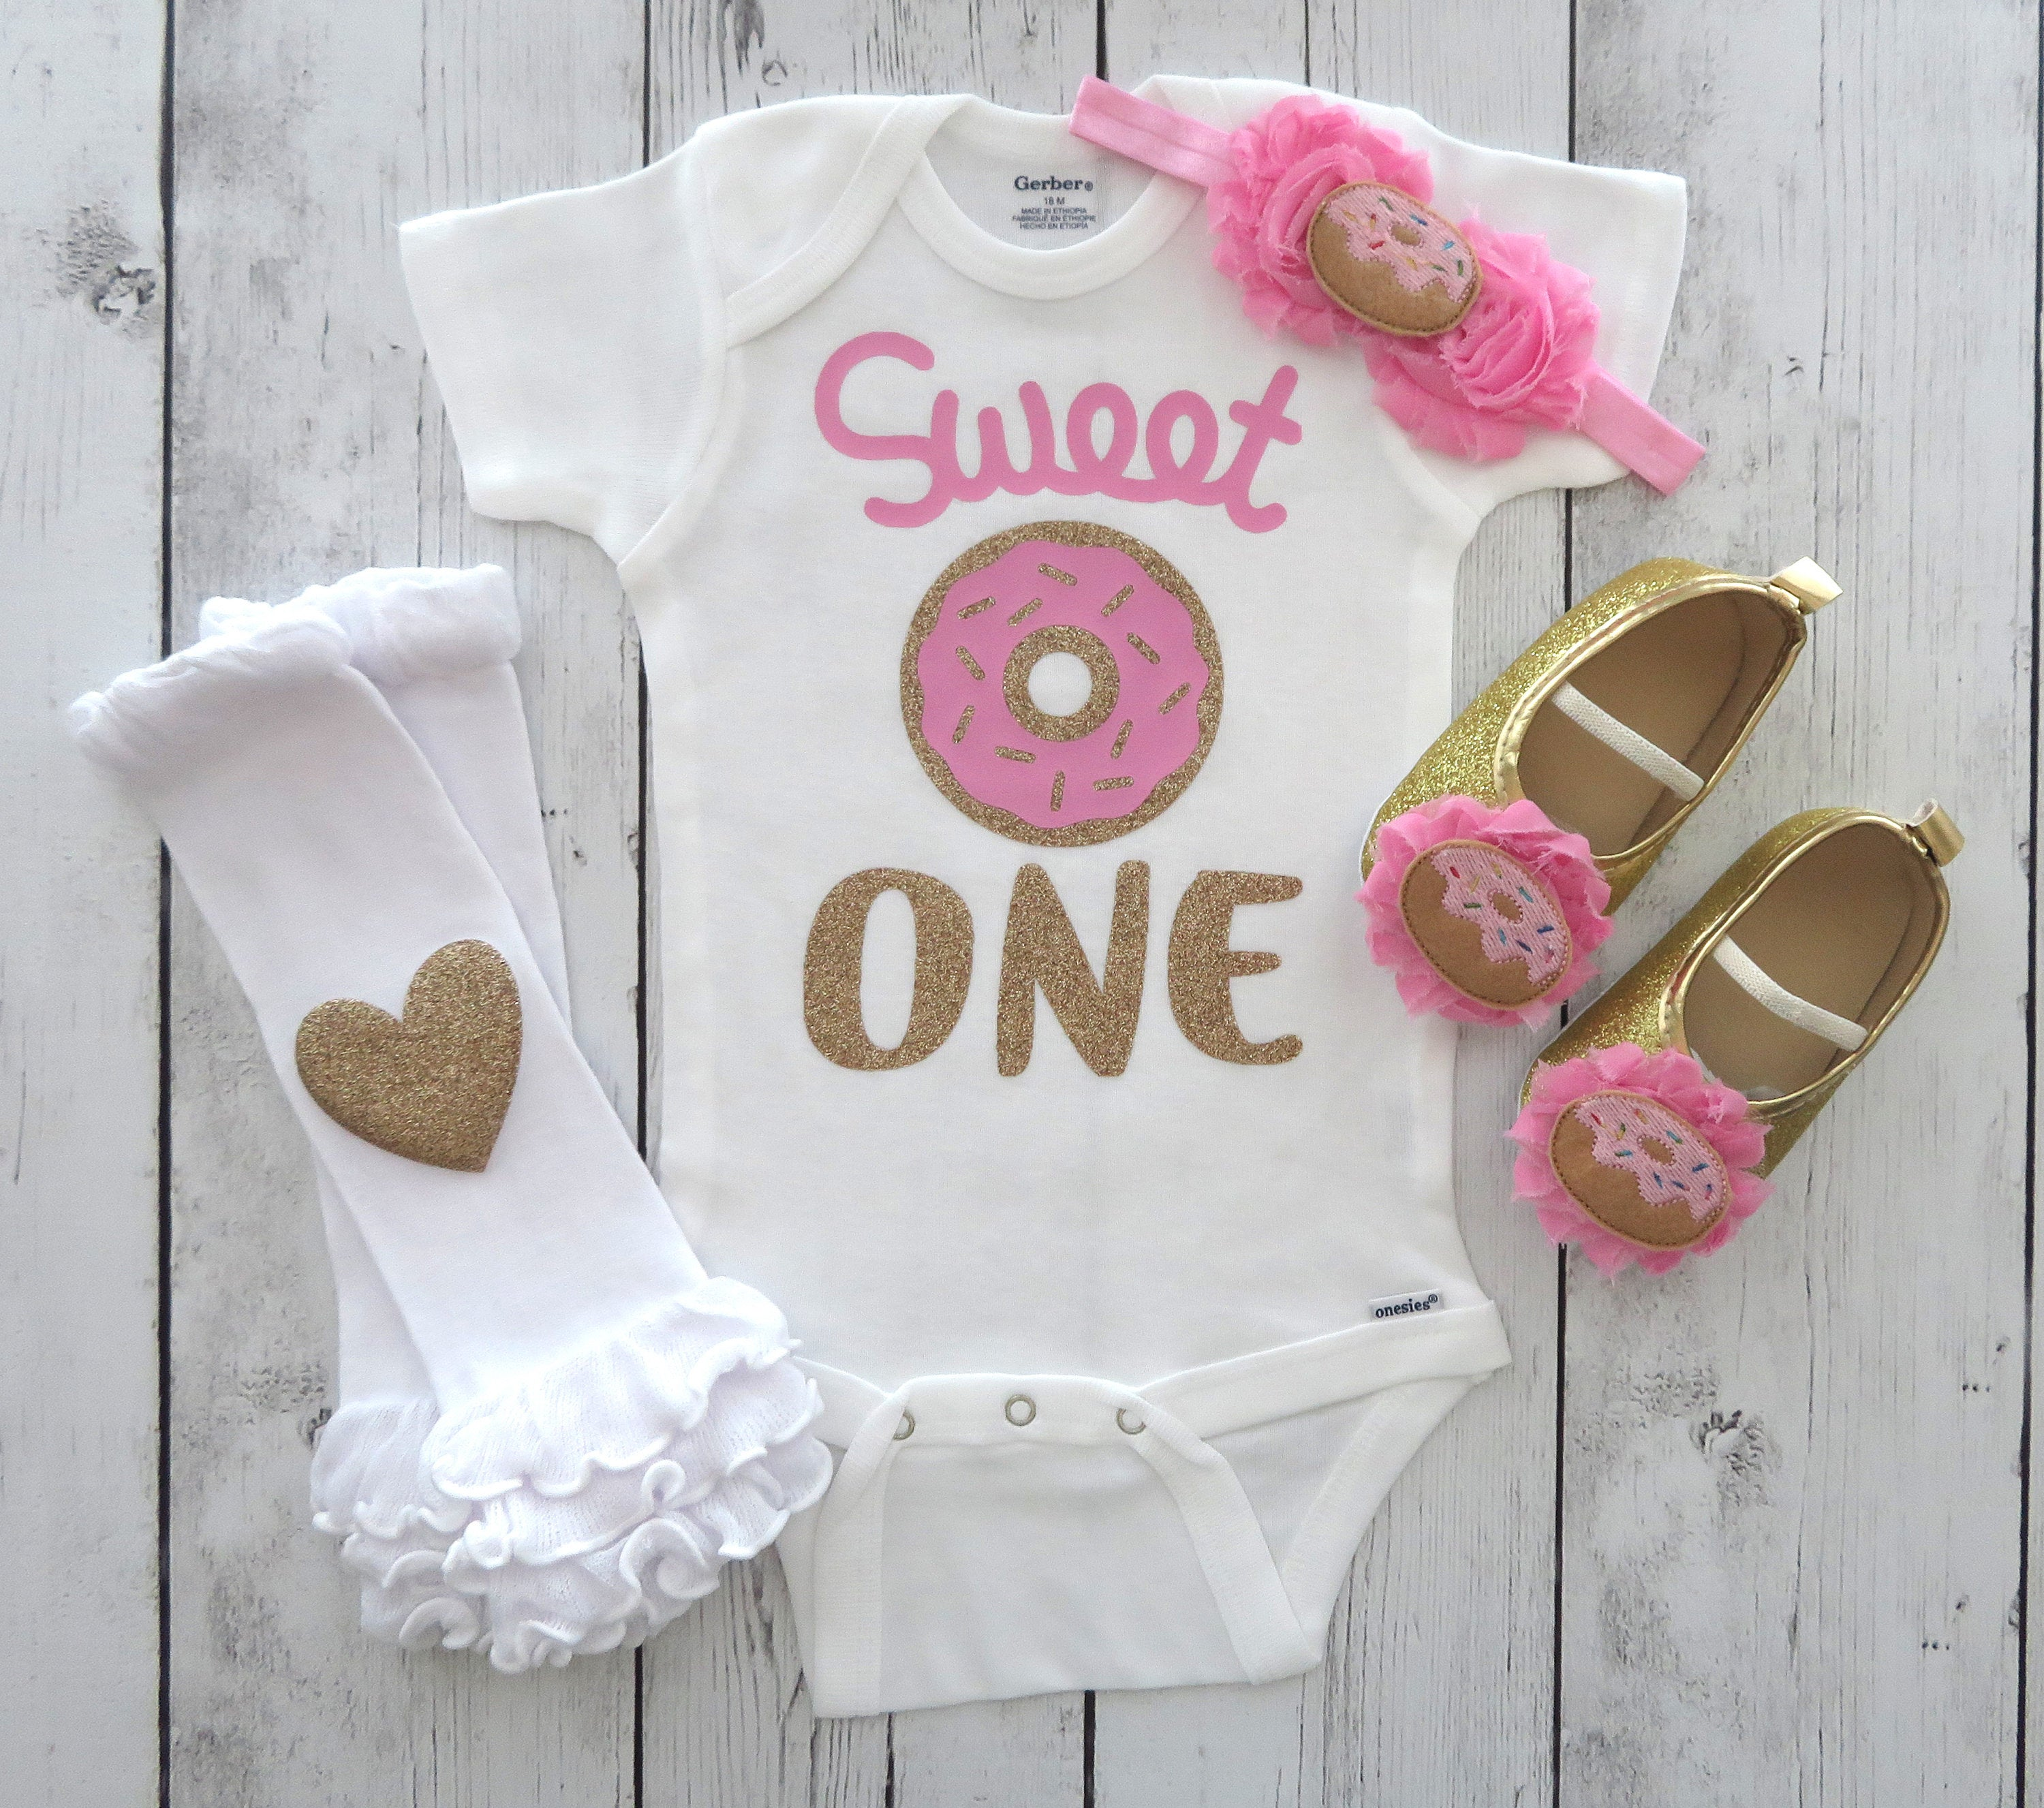 Sweet One Donut First Birthday Onesie in pink and gold - donut grow up, sweet one birthday outfit, donut shoes, donut birthday girl